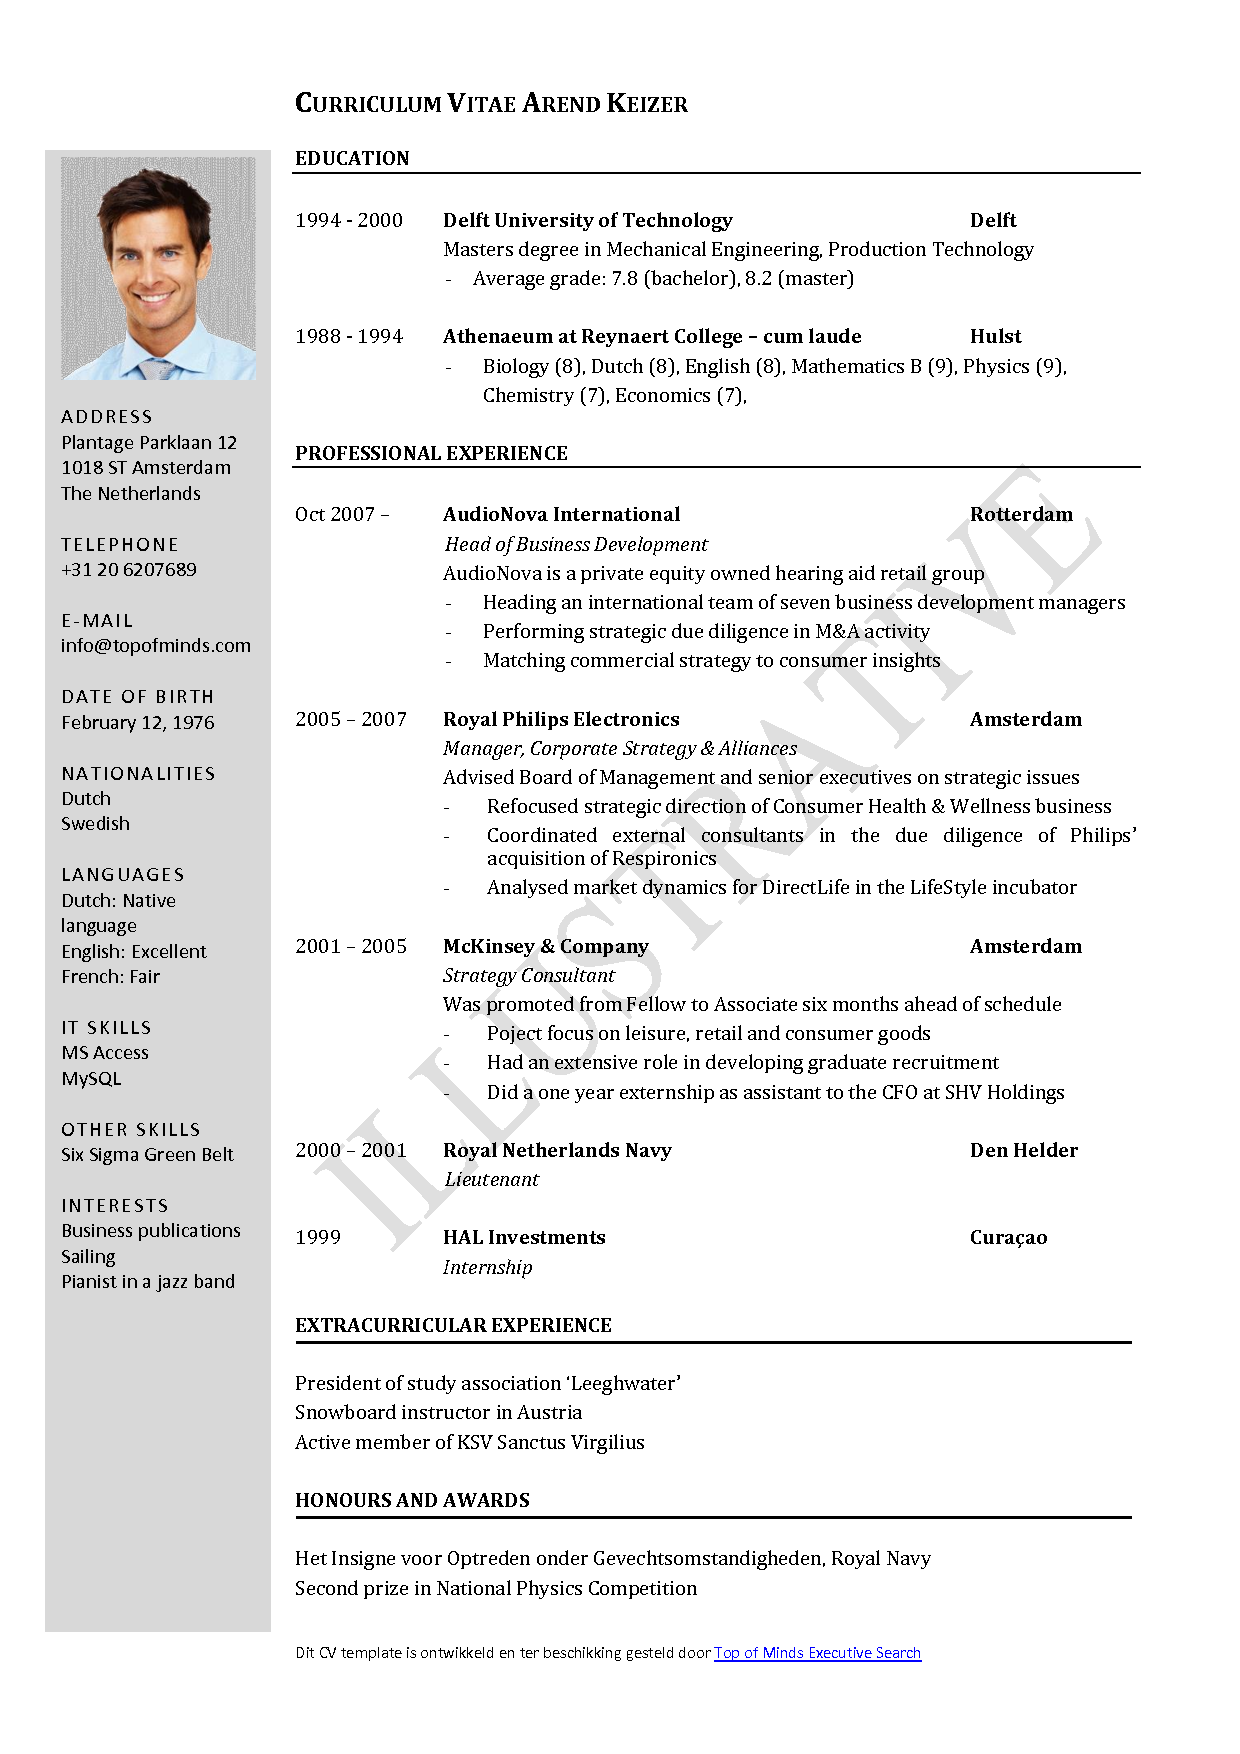 Attractive Free Curriculum Vitae Template Word | Download CV Template